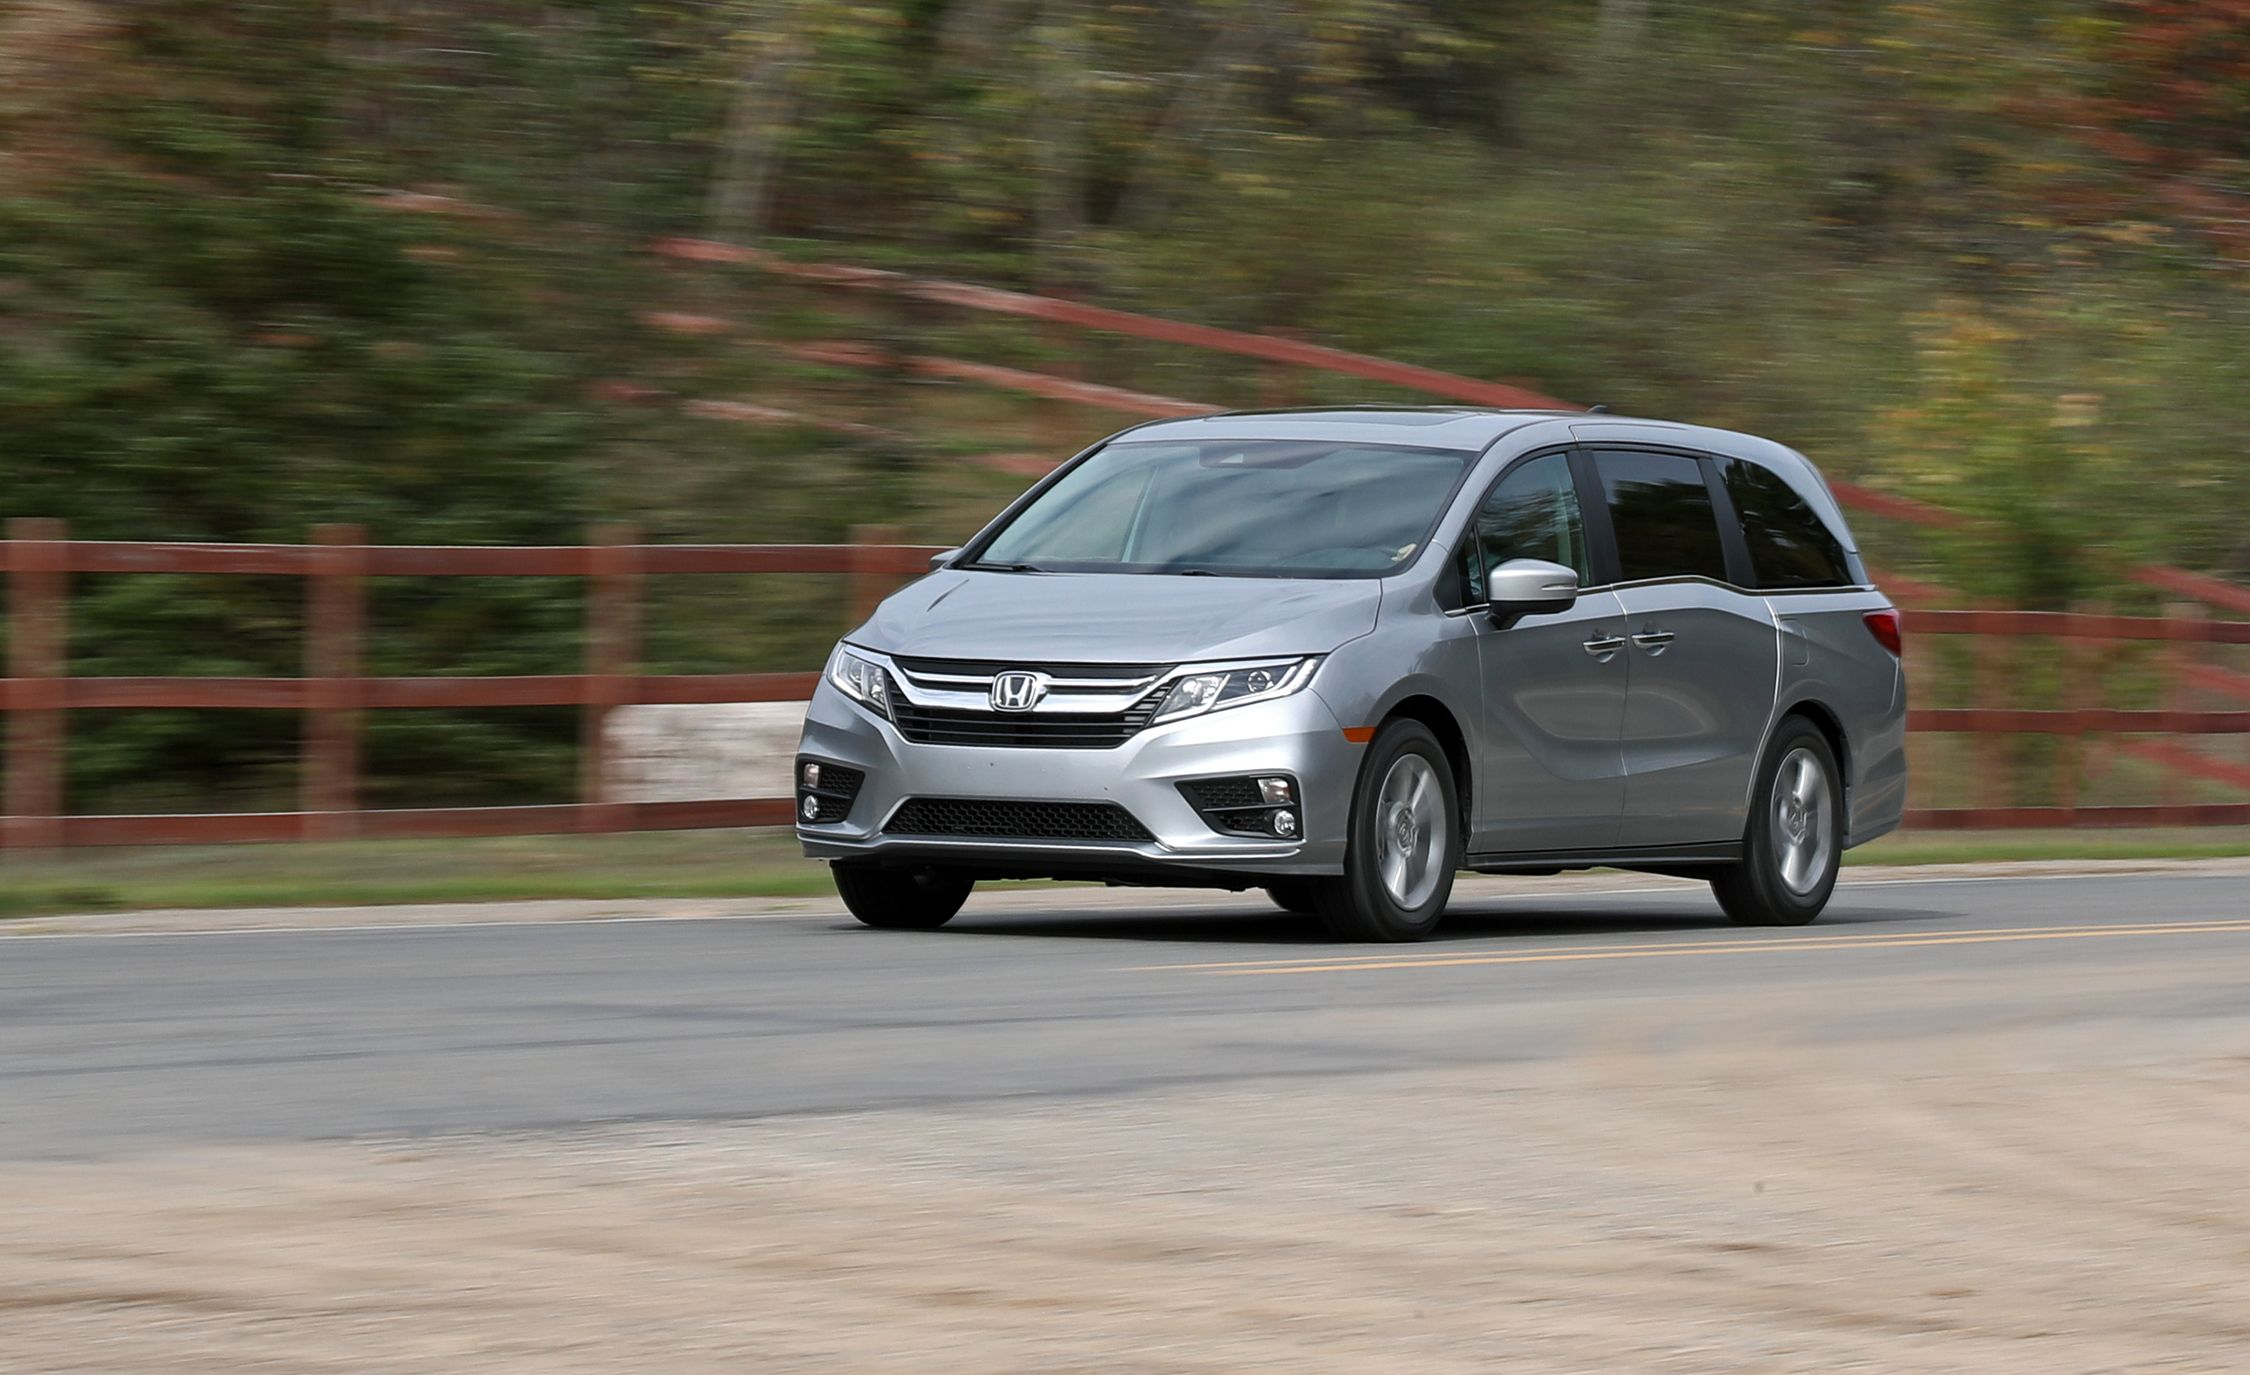 2018 Honda Odyssey Nine-Speed Automatic